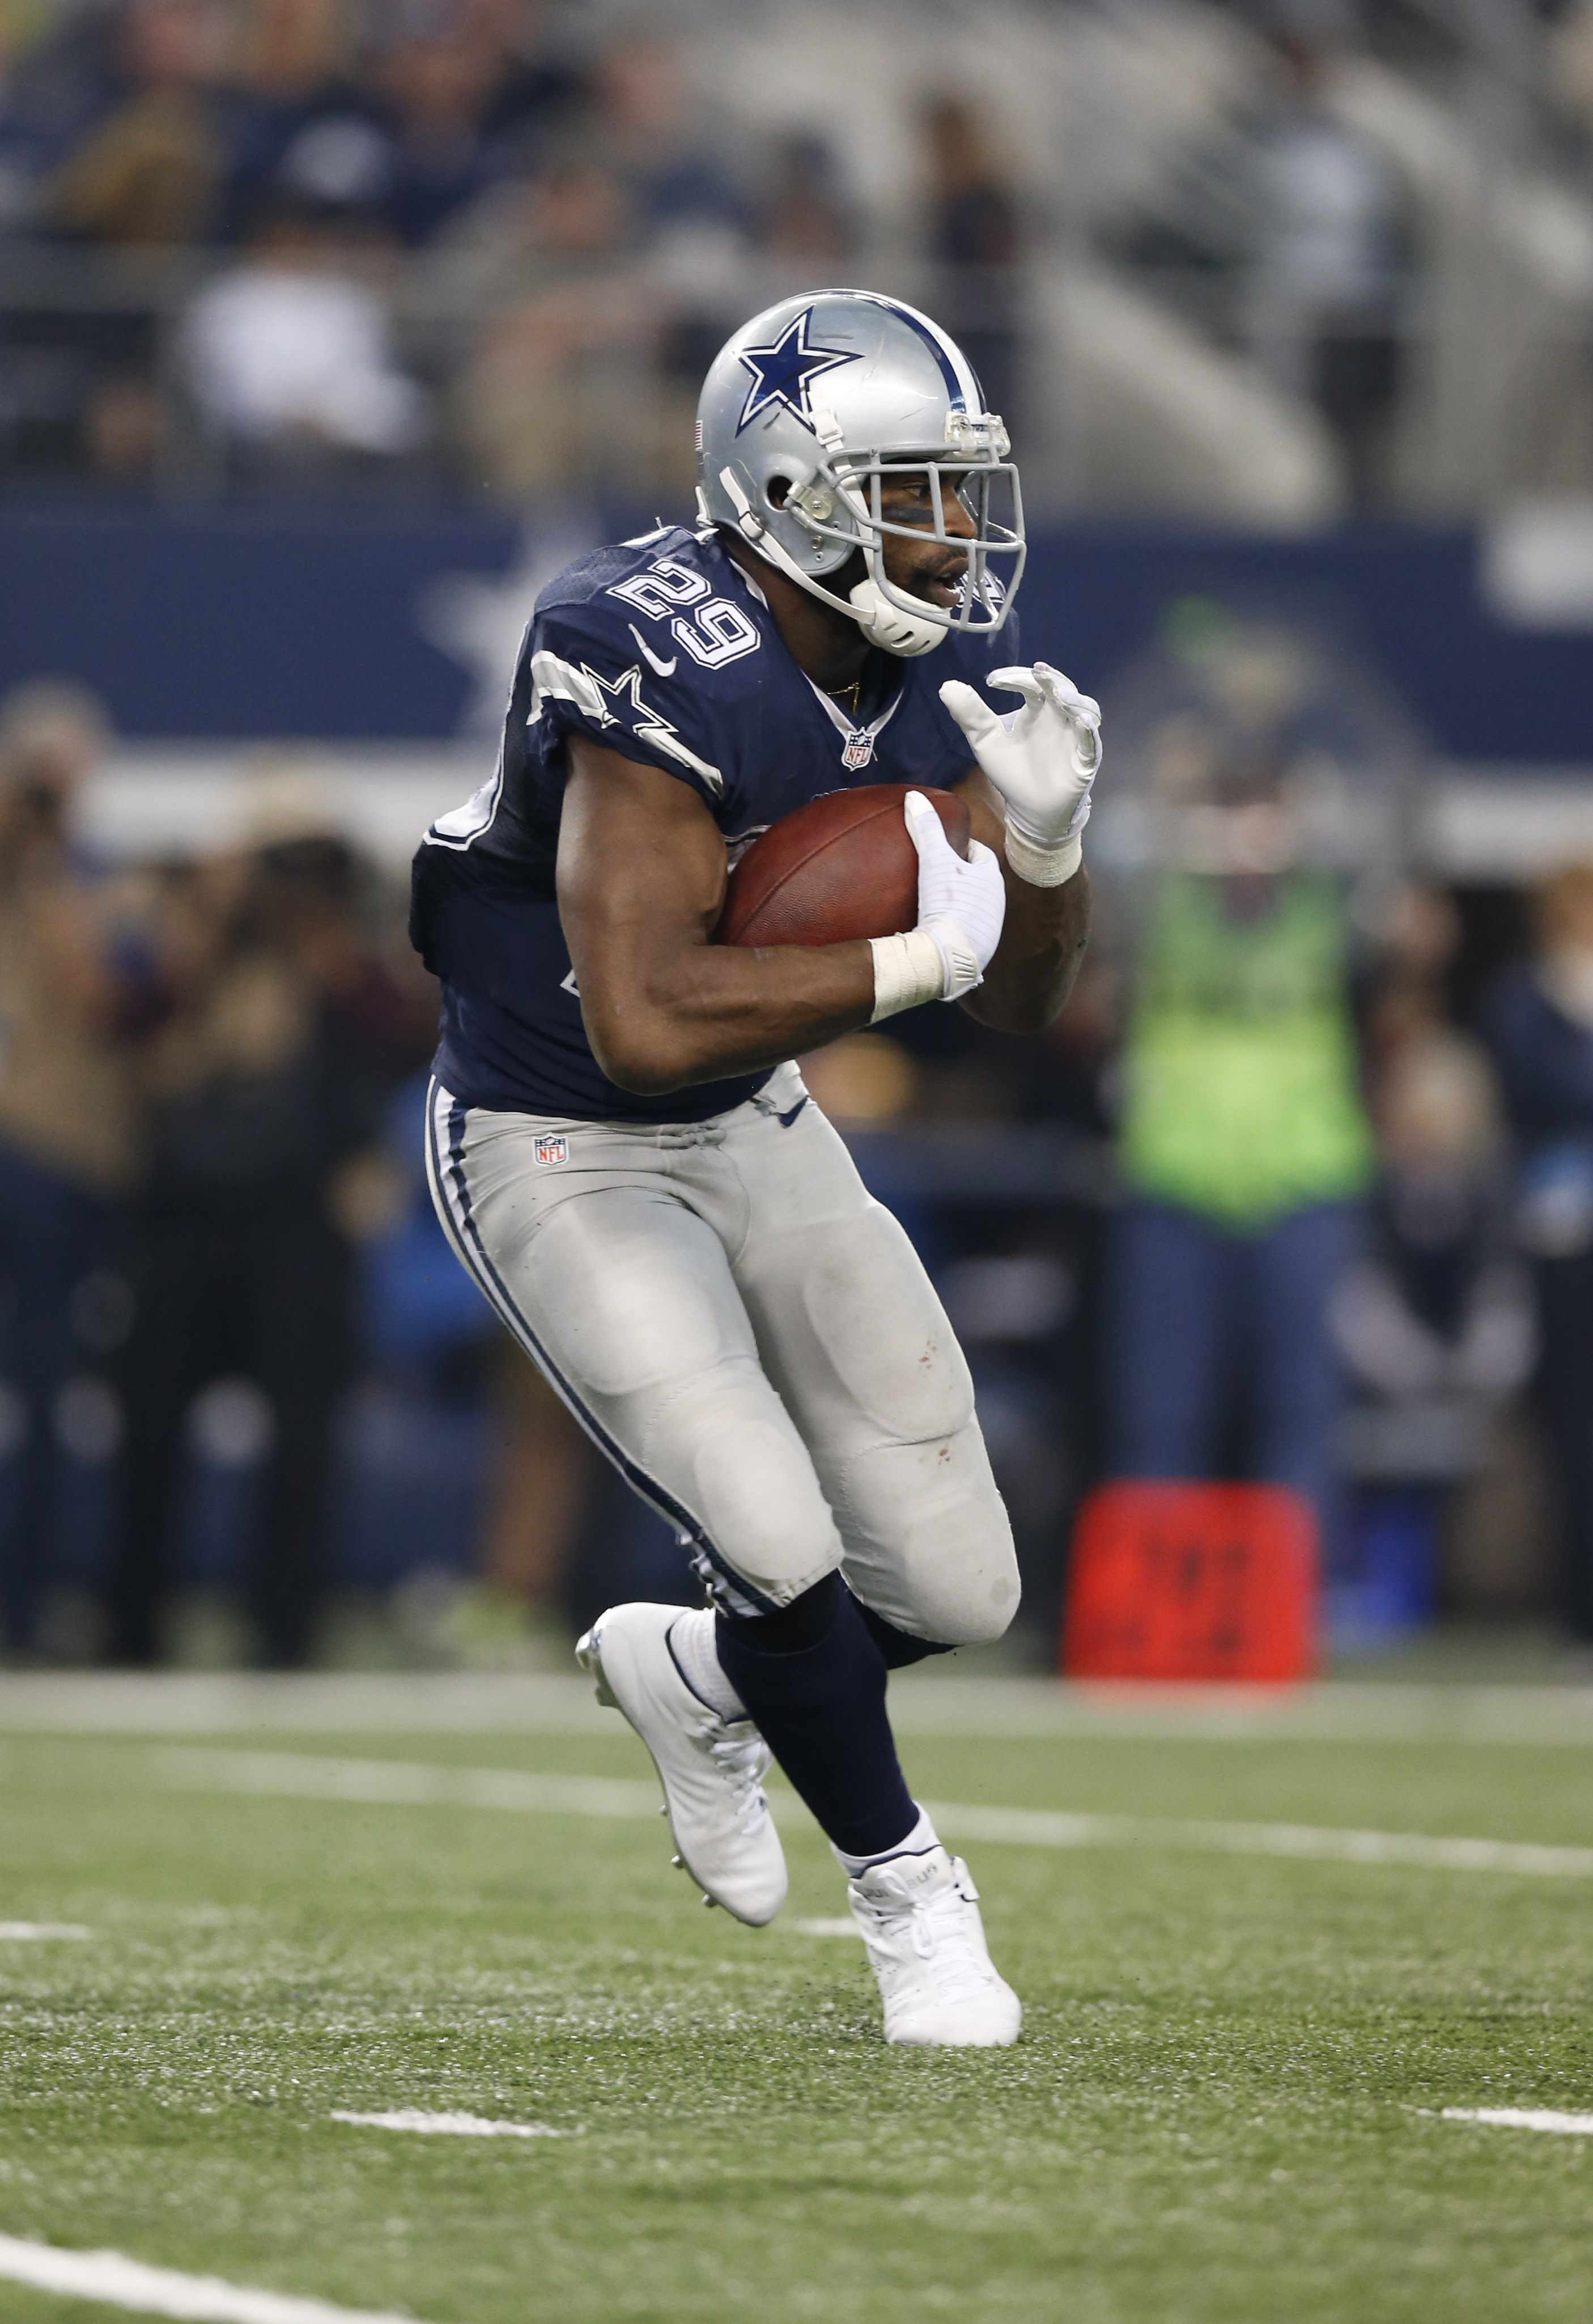 If DeMarco Murray can play, despite his broken hand, that should help Tony Romo beat the Clots.